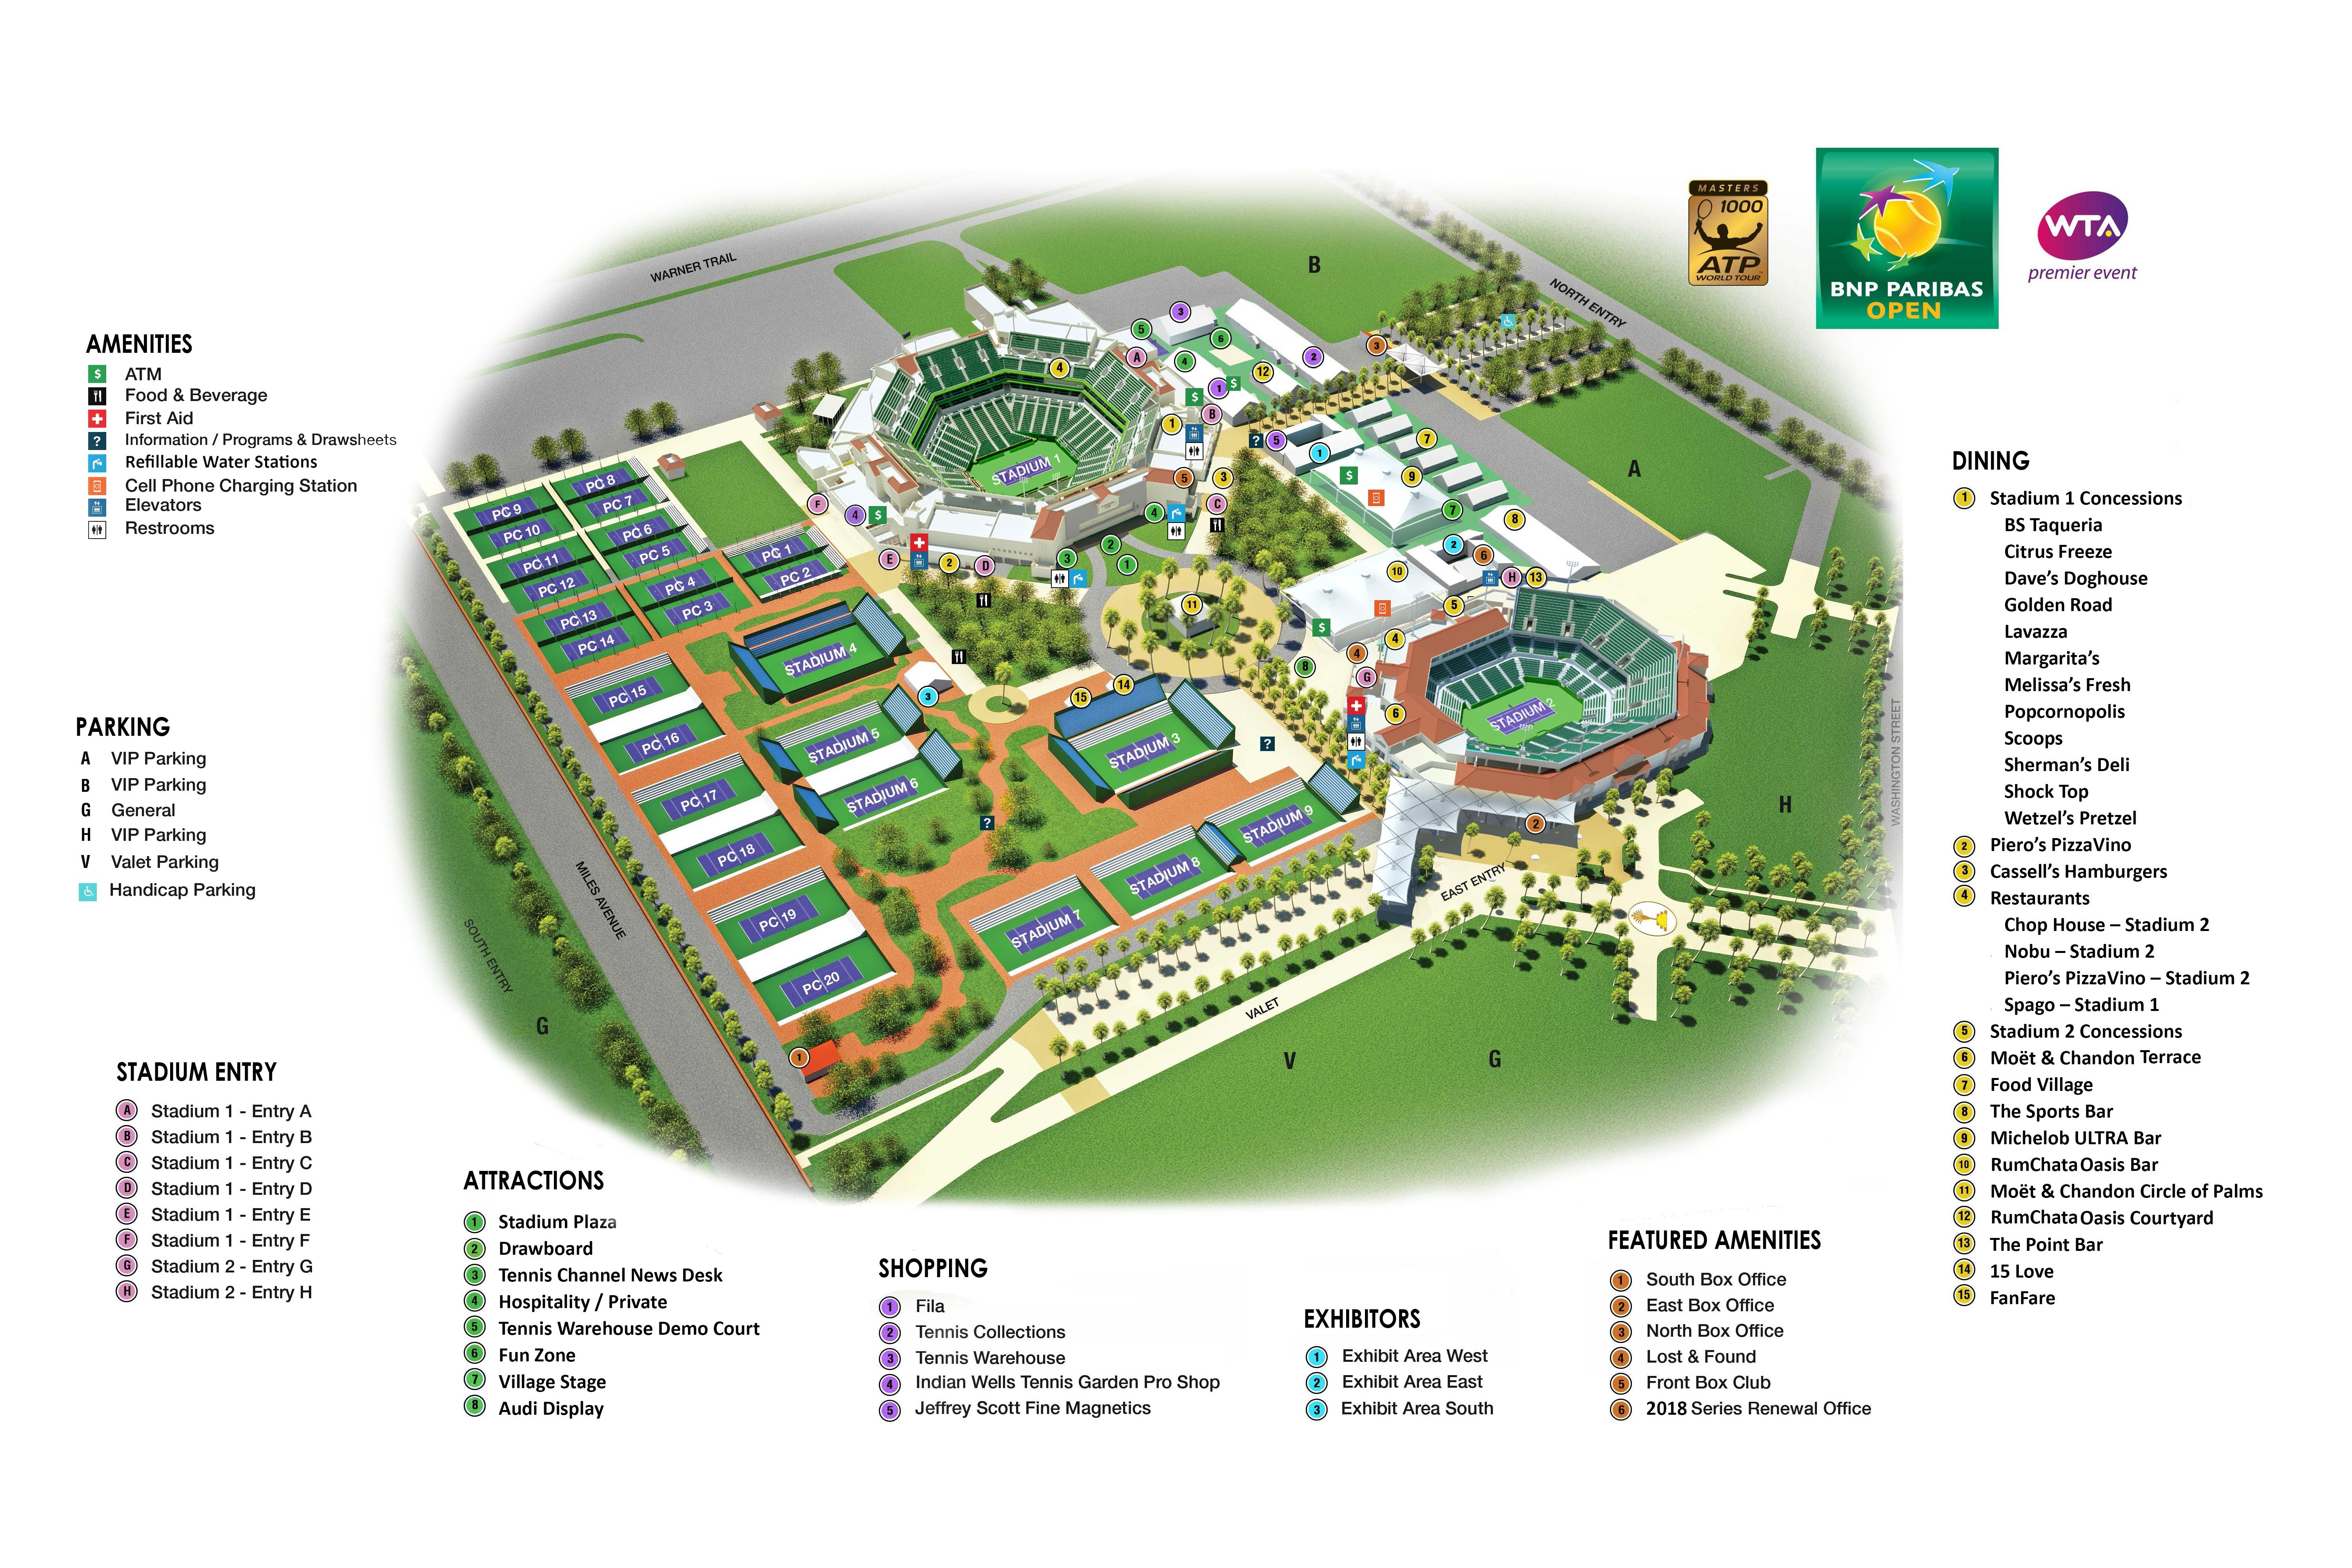 indian wells tennis garden map - Indian Wells Tennis Garden